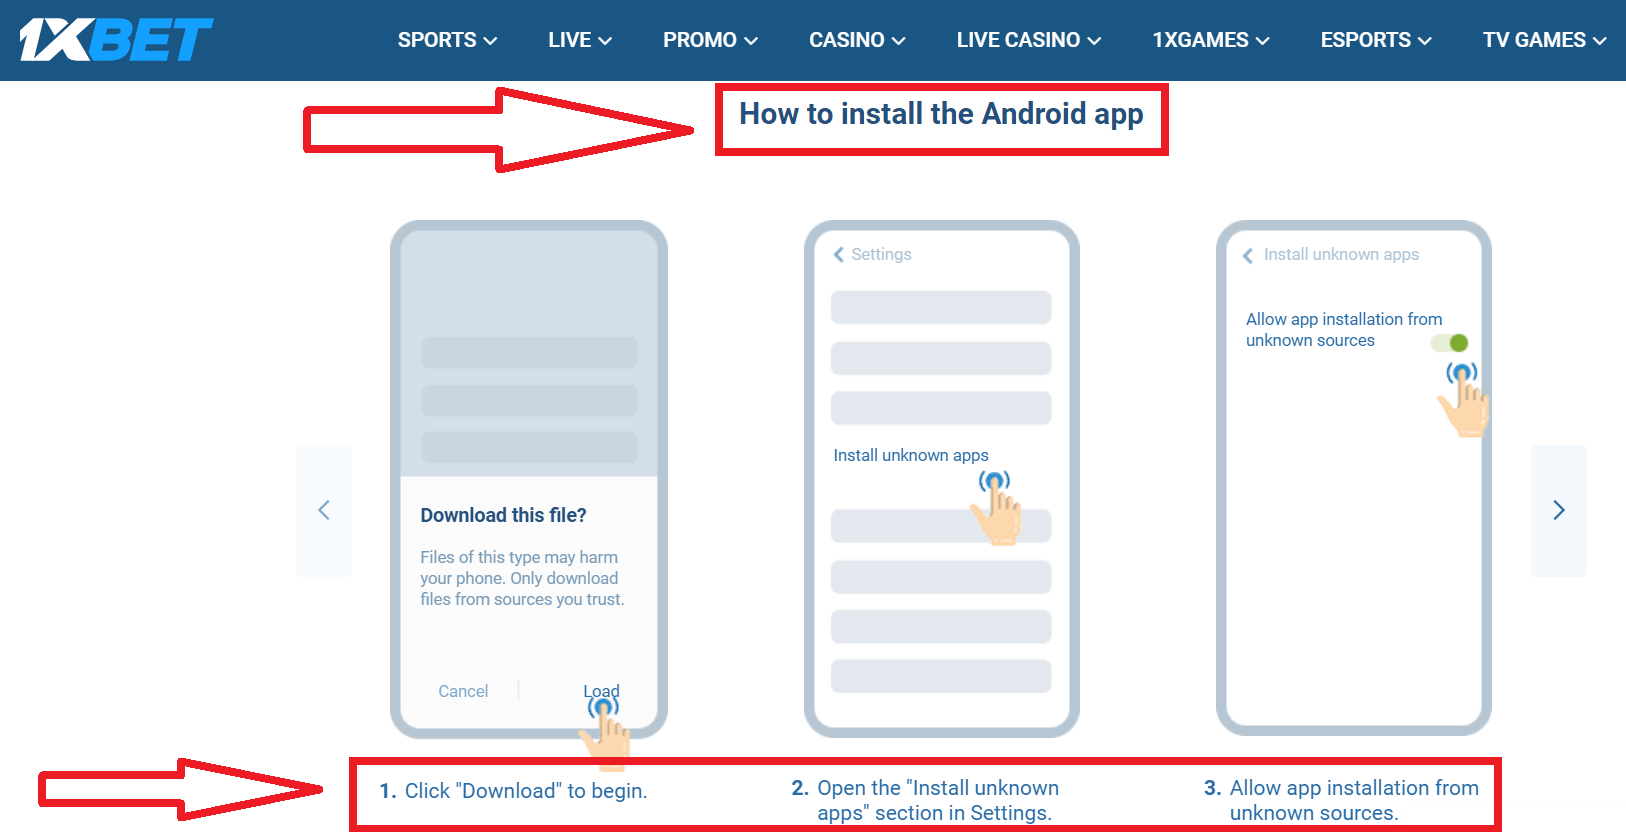 How to start the apk download process for Android app by the 1xBet company